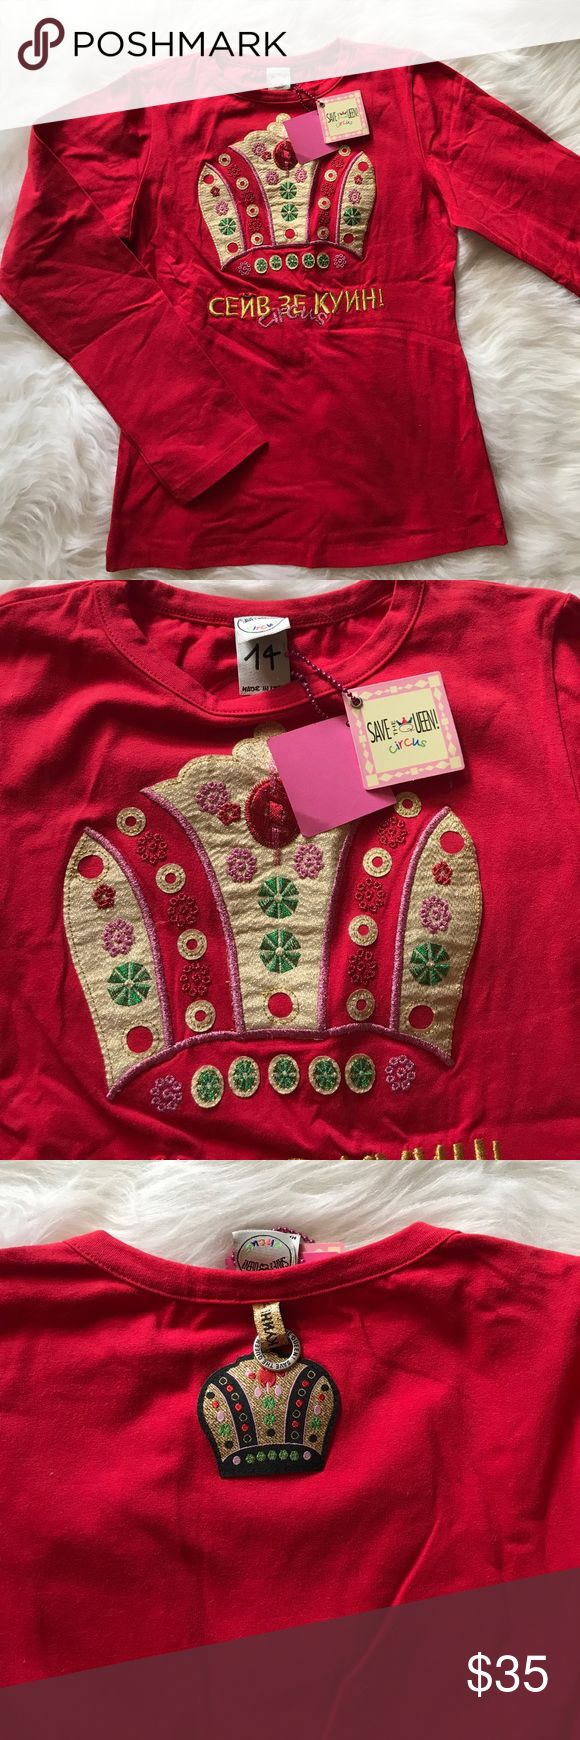 """NWT Amazing Red Save The Queen Girls Top sz 14 XS Very rare and hard to find red long sleeve top by Save The Queen. Purchased in Europe few years ago. New with tags and is size 14 kids but could easily fit XS or Small adult. Armpit to armpit: 15"""". Overall length from shoulder: 21"""". Sleeves: 22"""".      Clearing out my daughter's closet! Bundle and save! Save The Queen Shirts & Tops Tees - Long Sleeve"""